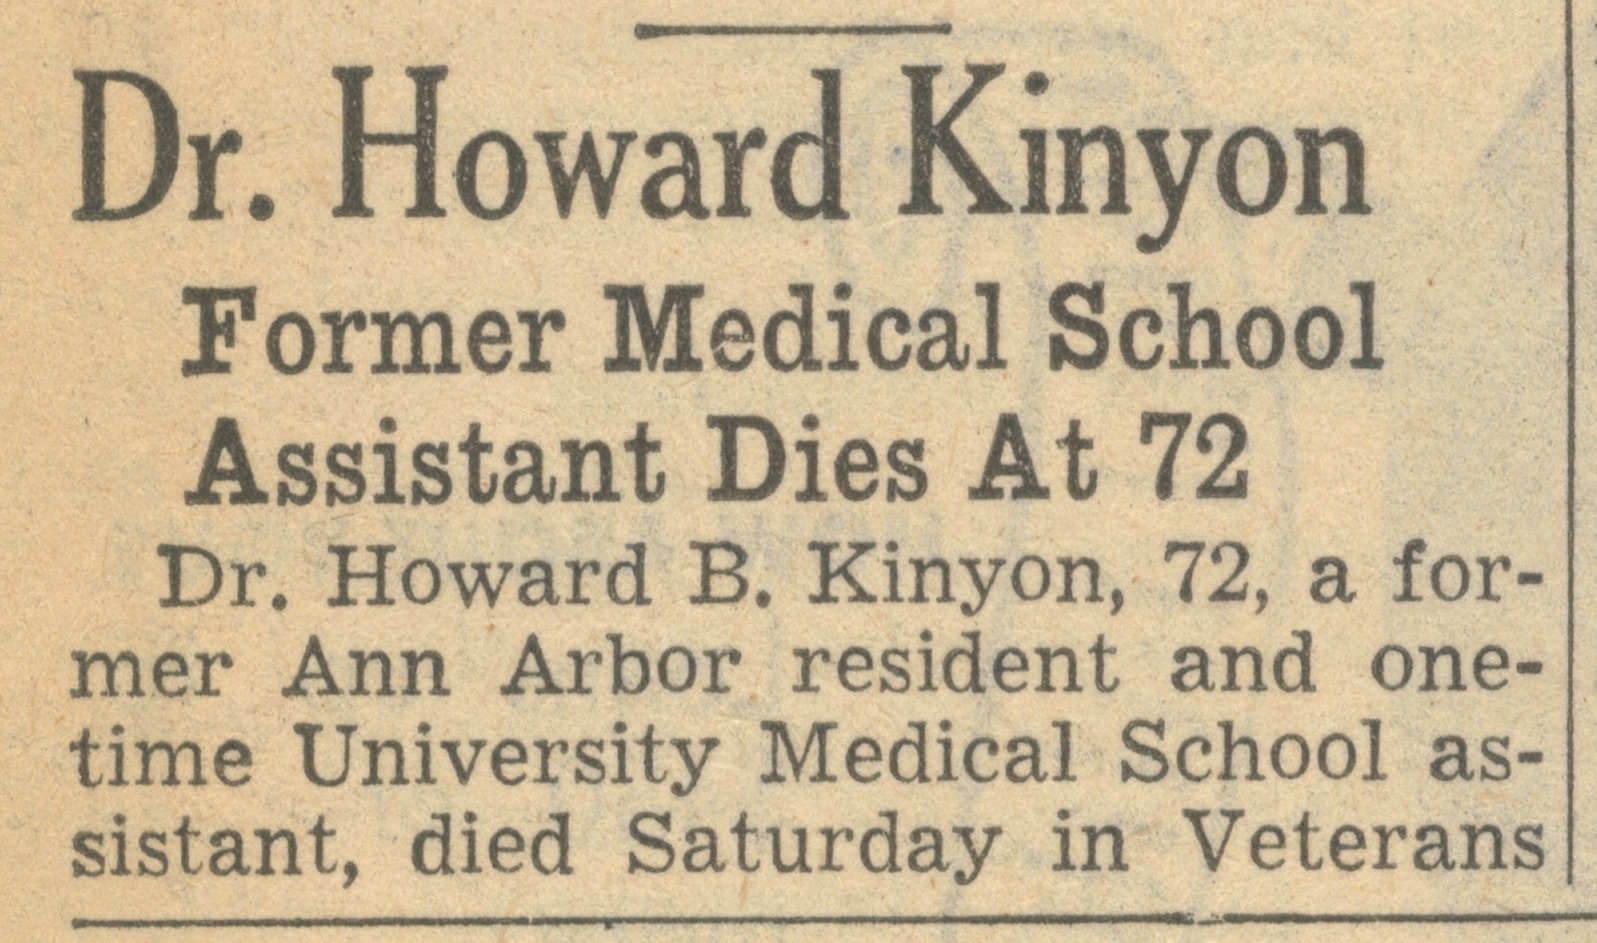 Dr. Howard Kinyon image